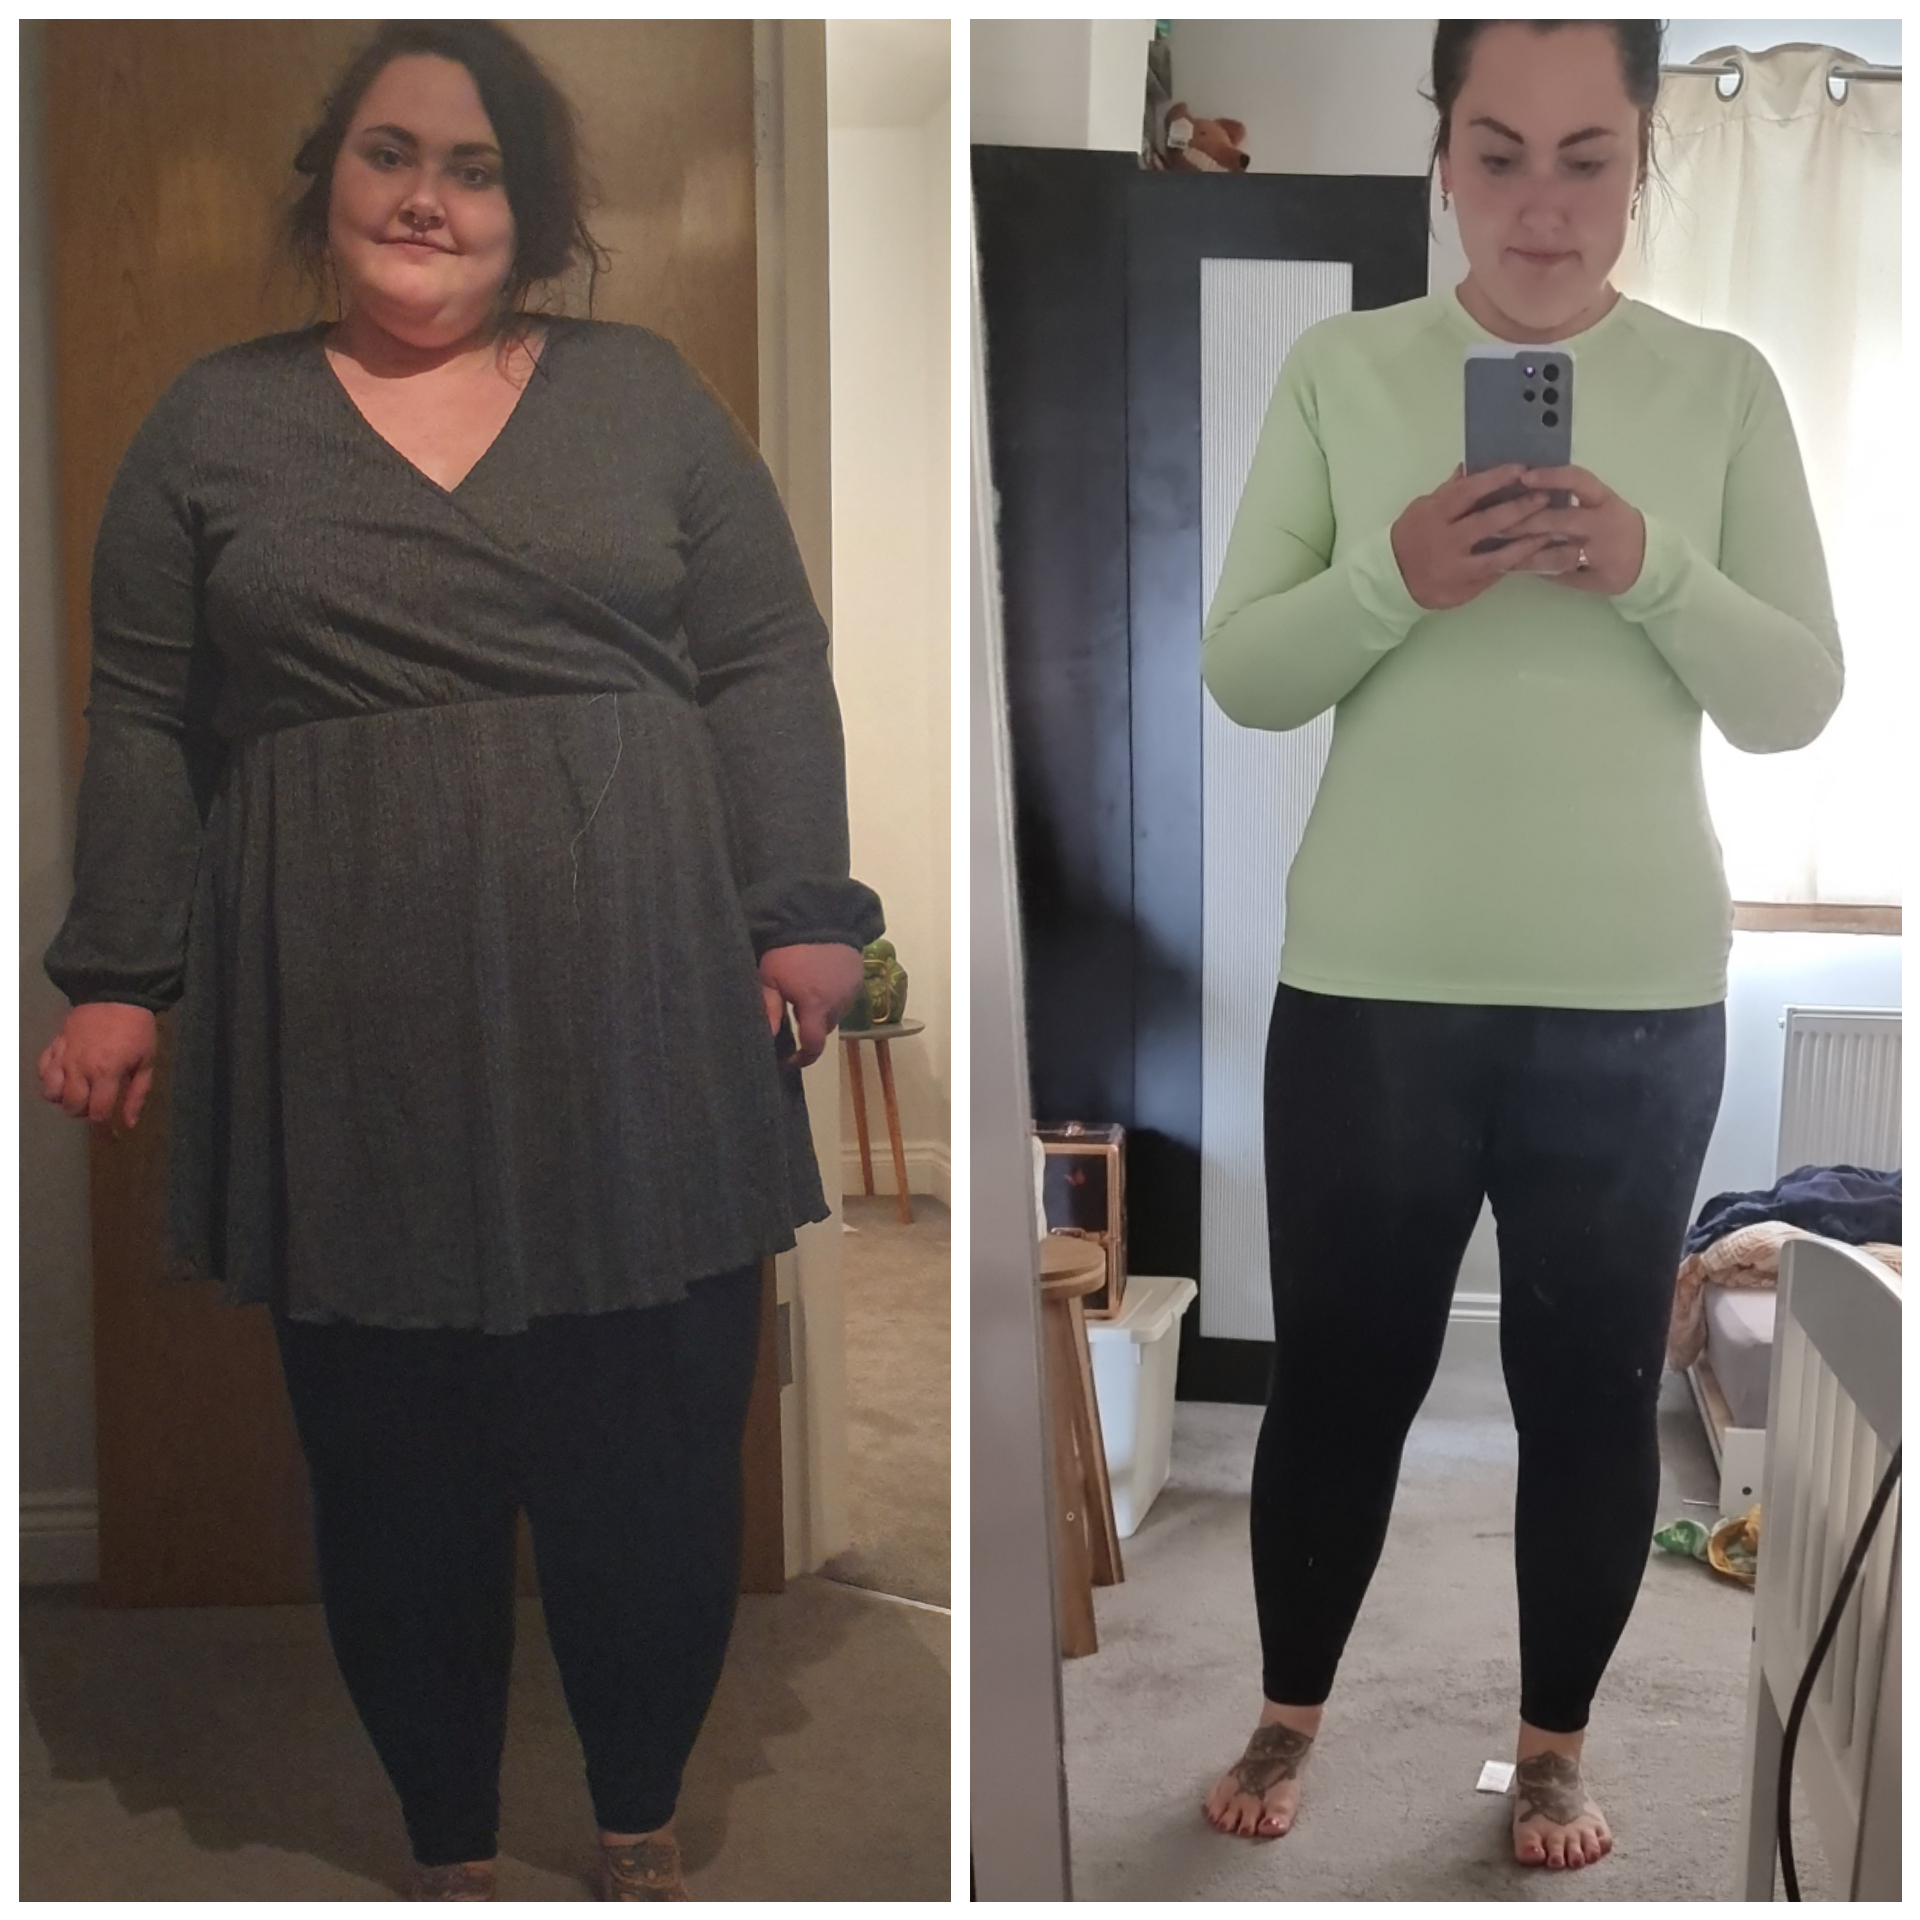 5 foot 6 Female 134 lbs Fat Loss Before and After 308 lbs to 174 lbs